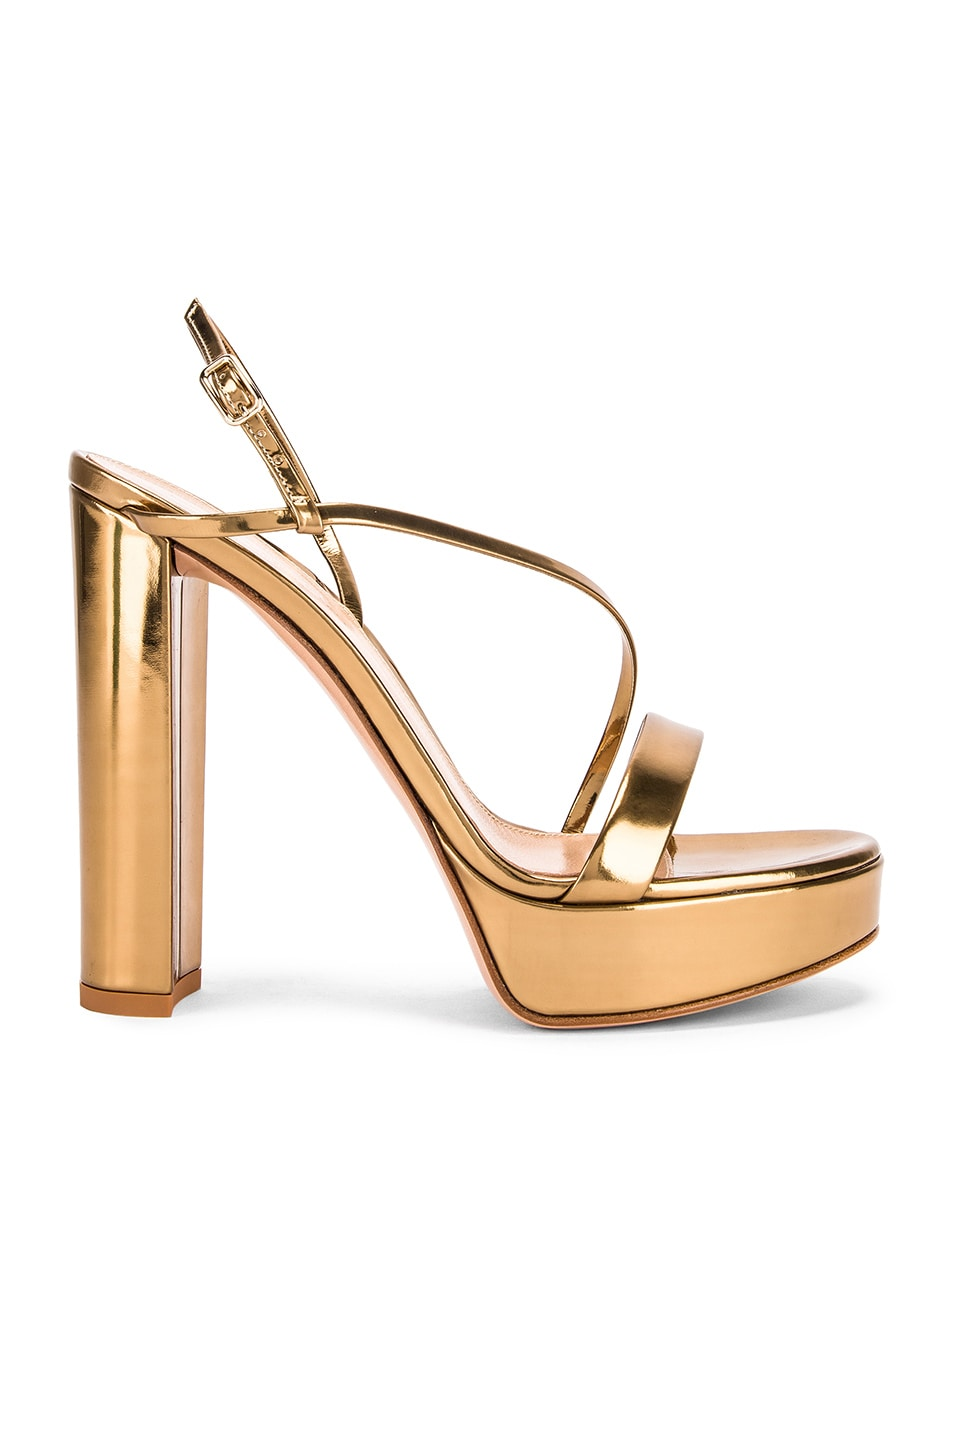 Image 1 of Gianvito Rossi Kimberly Strappy Sandal Heels in Gold